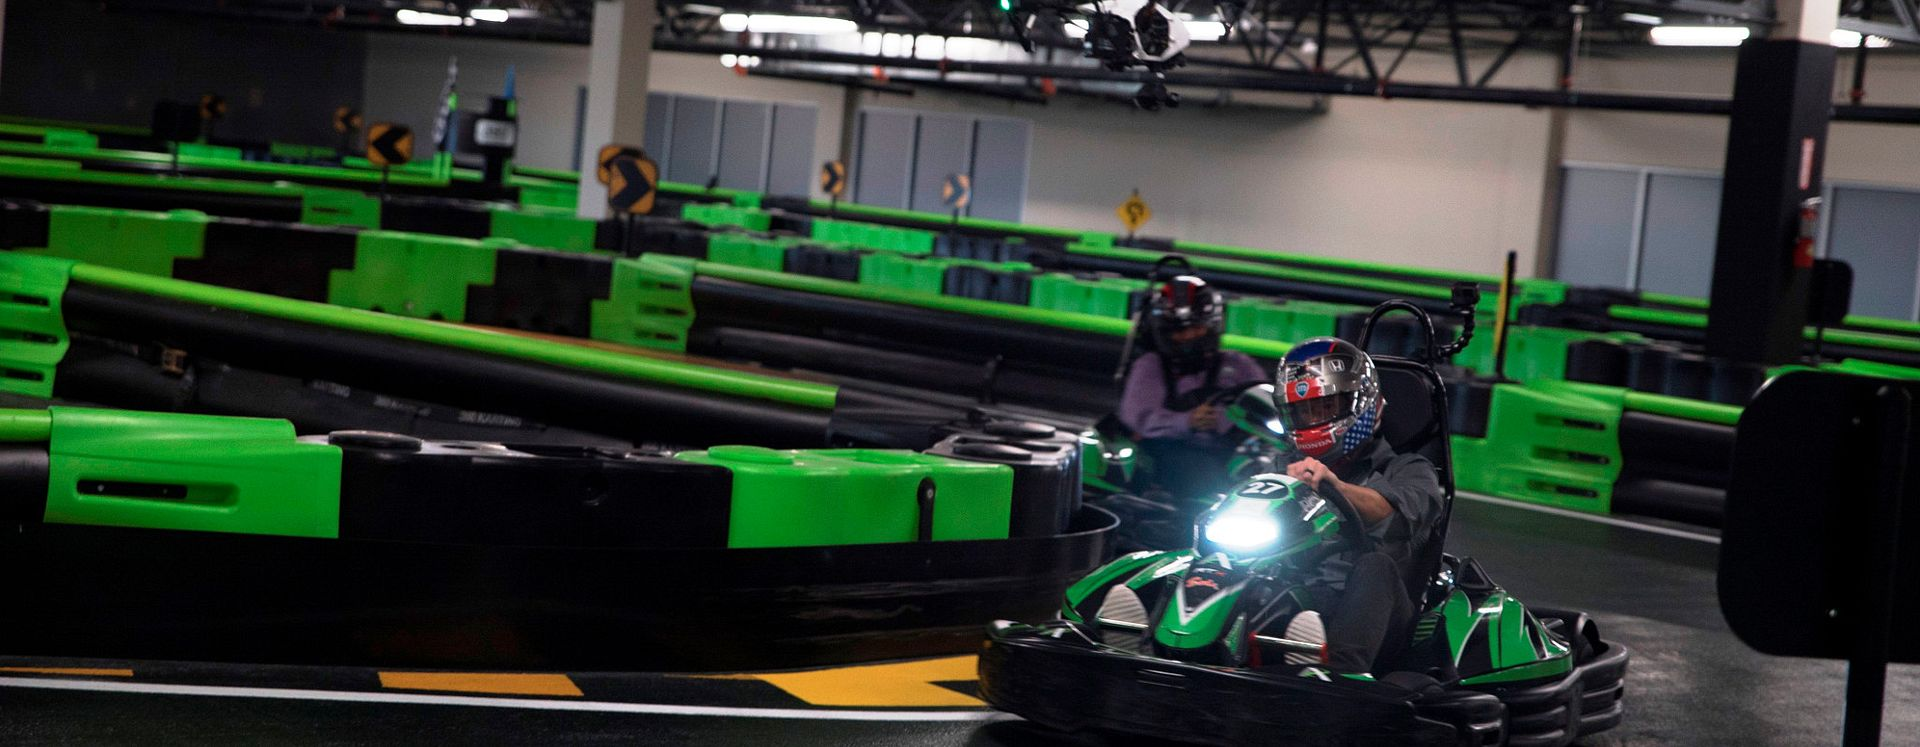 Drivers racing around an indoor track at Andretti Indoor Karting & Games in Orlando, Florida.